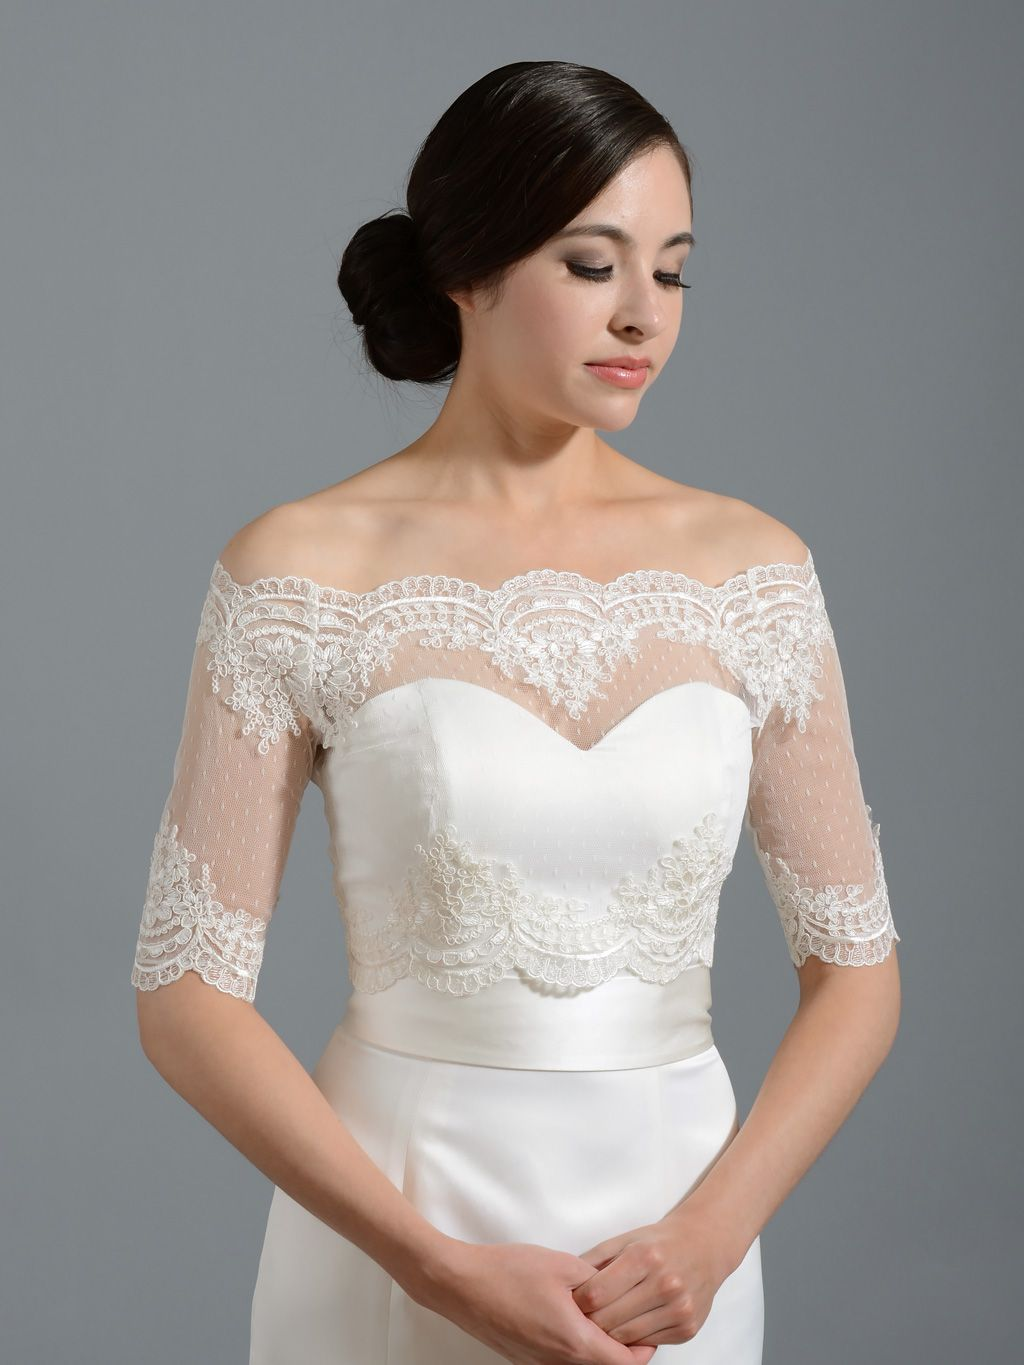 Off shoulder dot lace bridal bolero wedding jacket shrug wj007 off shoulder dot lace bridal bolero wedding jacket shrug tried this on and it was a very fun addition to a plain dress ombrellifo Choice Image